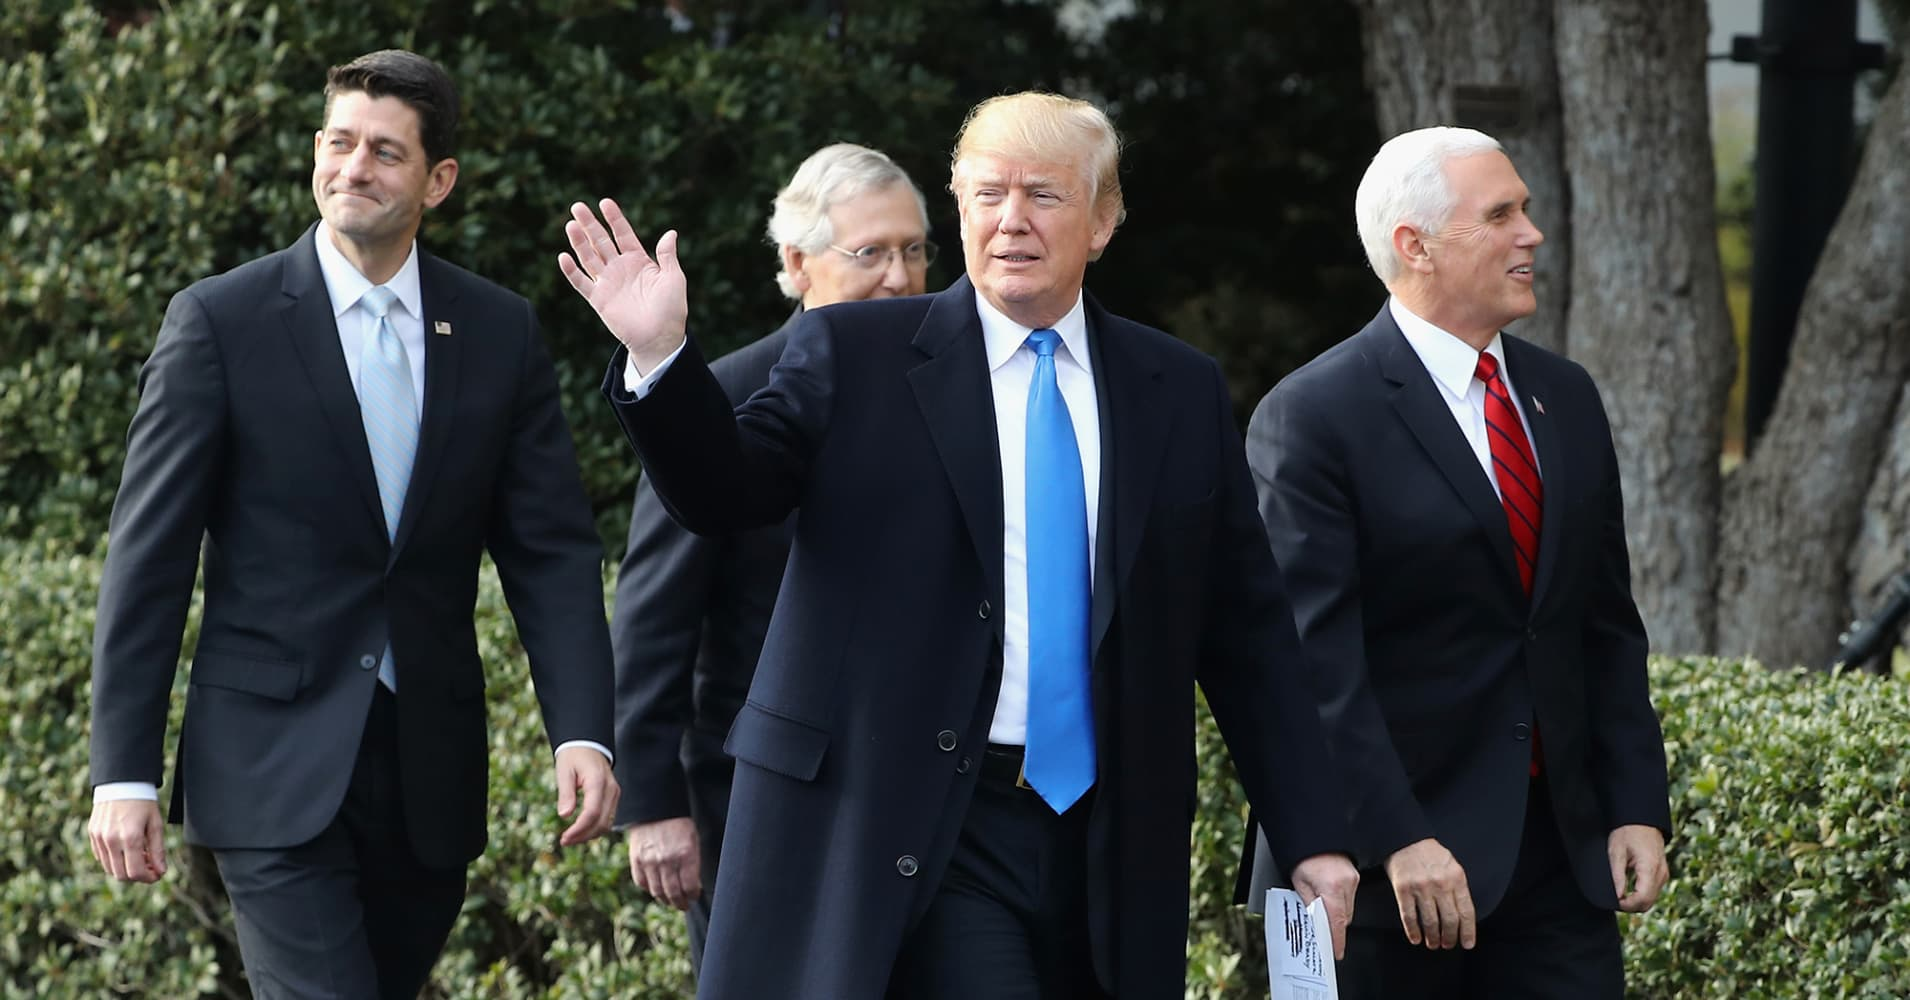 Trump says he'd be open to talking with North Korean leader